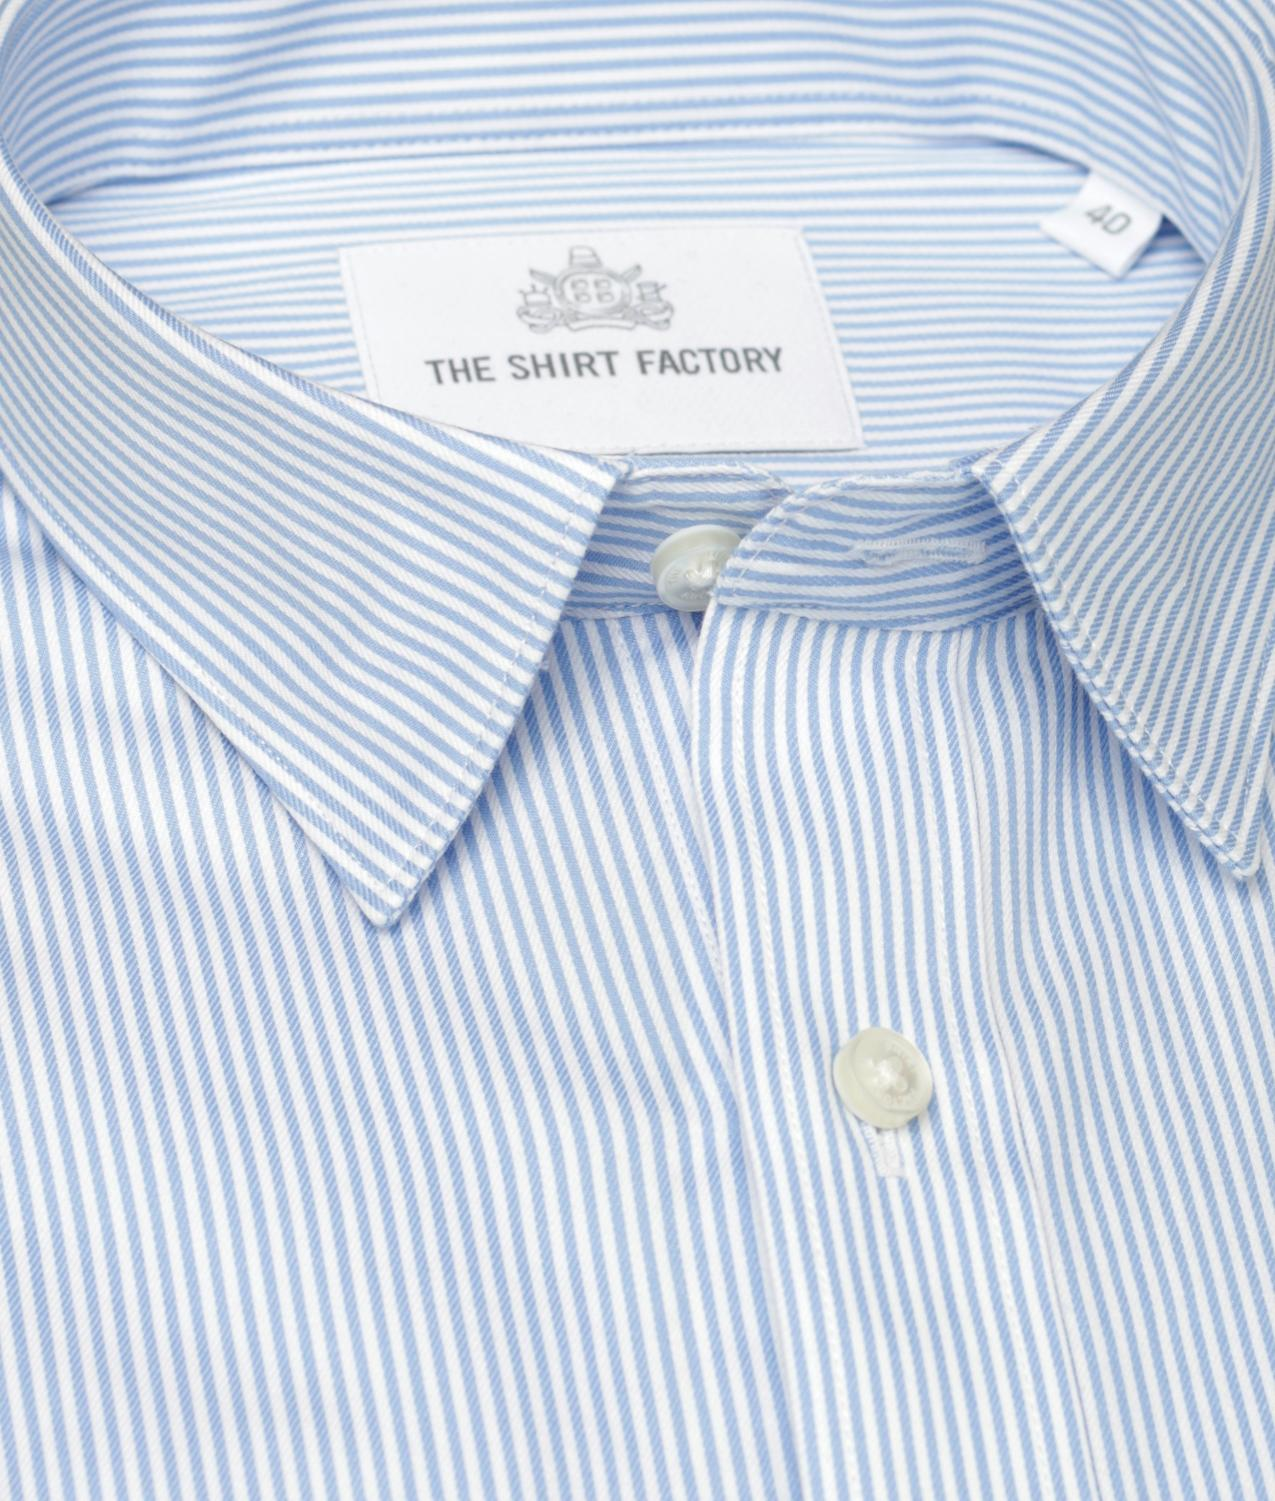 Shirt California The Shirt Factory